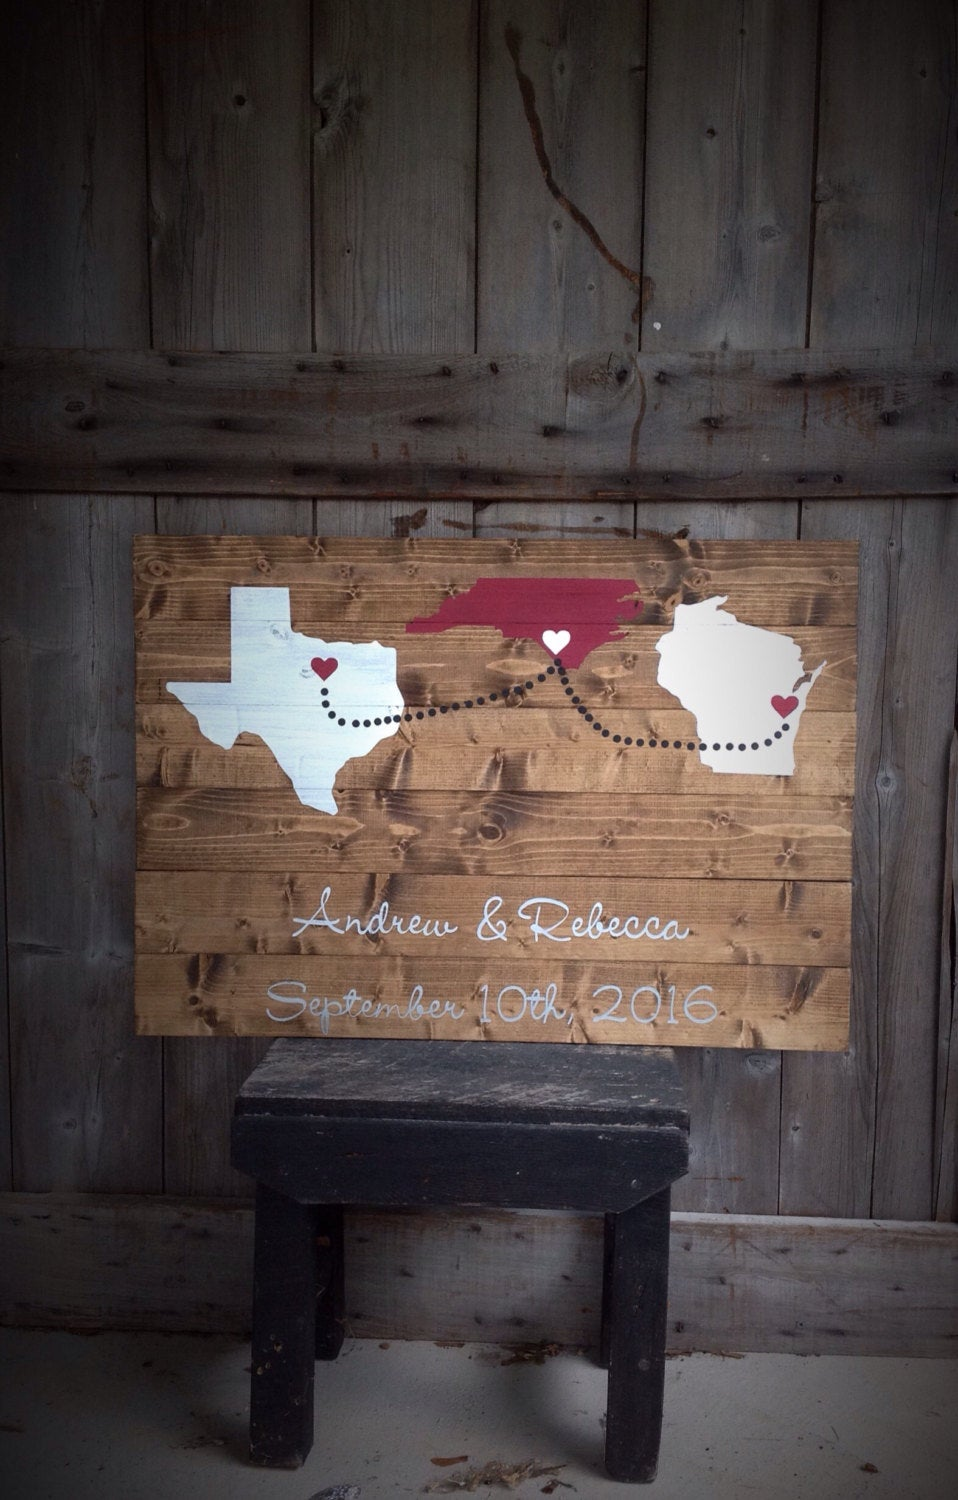 Wedding Guest Book, Guestbook, Custom Wood Sign, Guest Book With States, Hearts, Names & Date